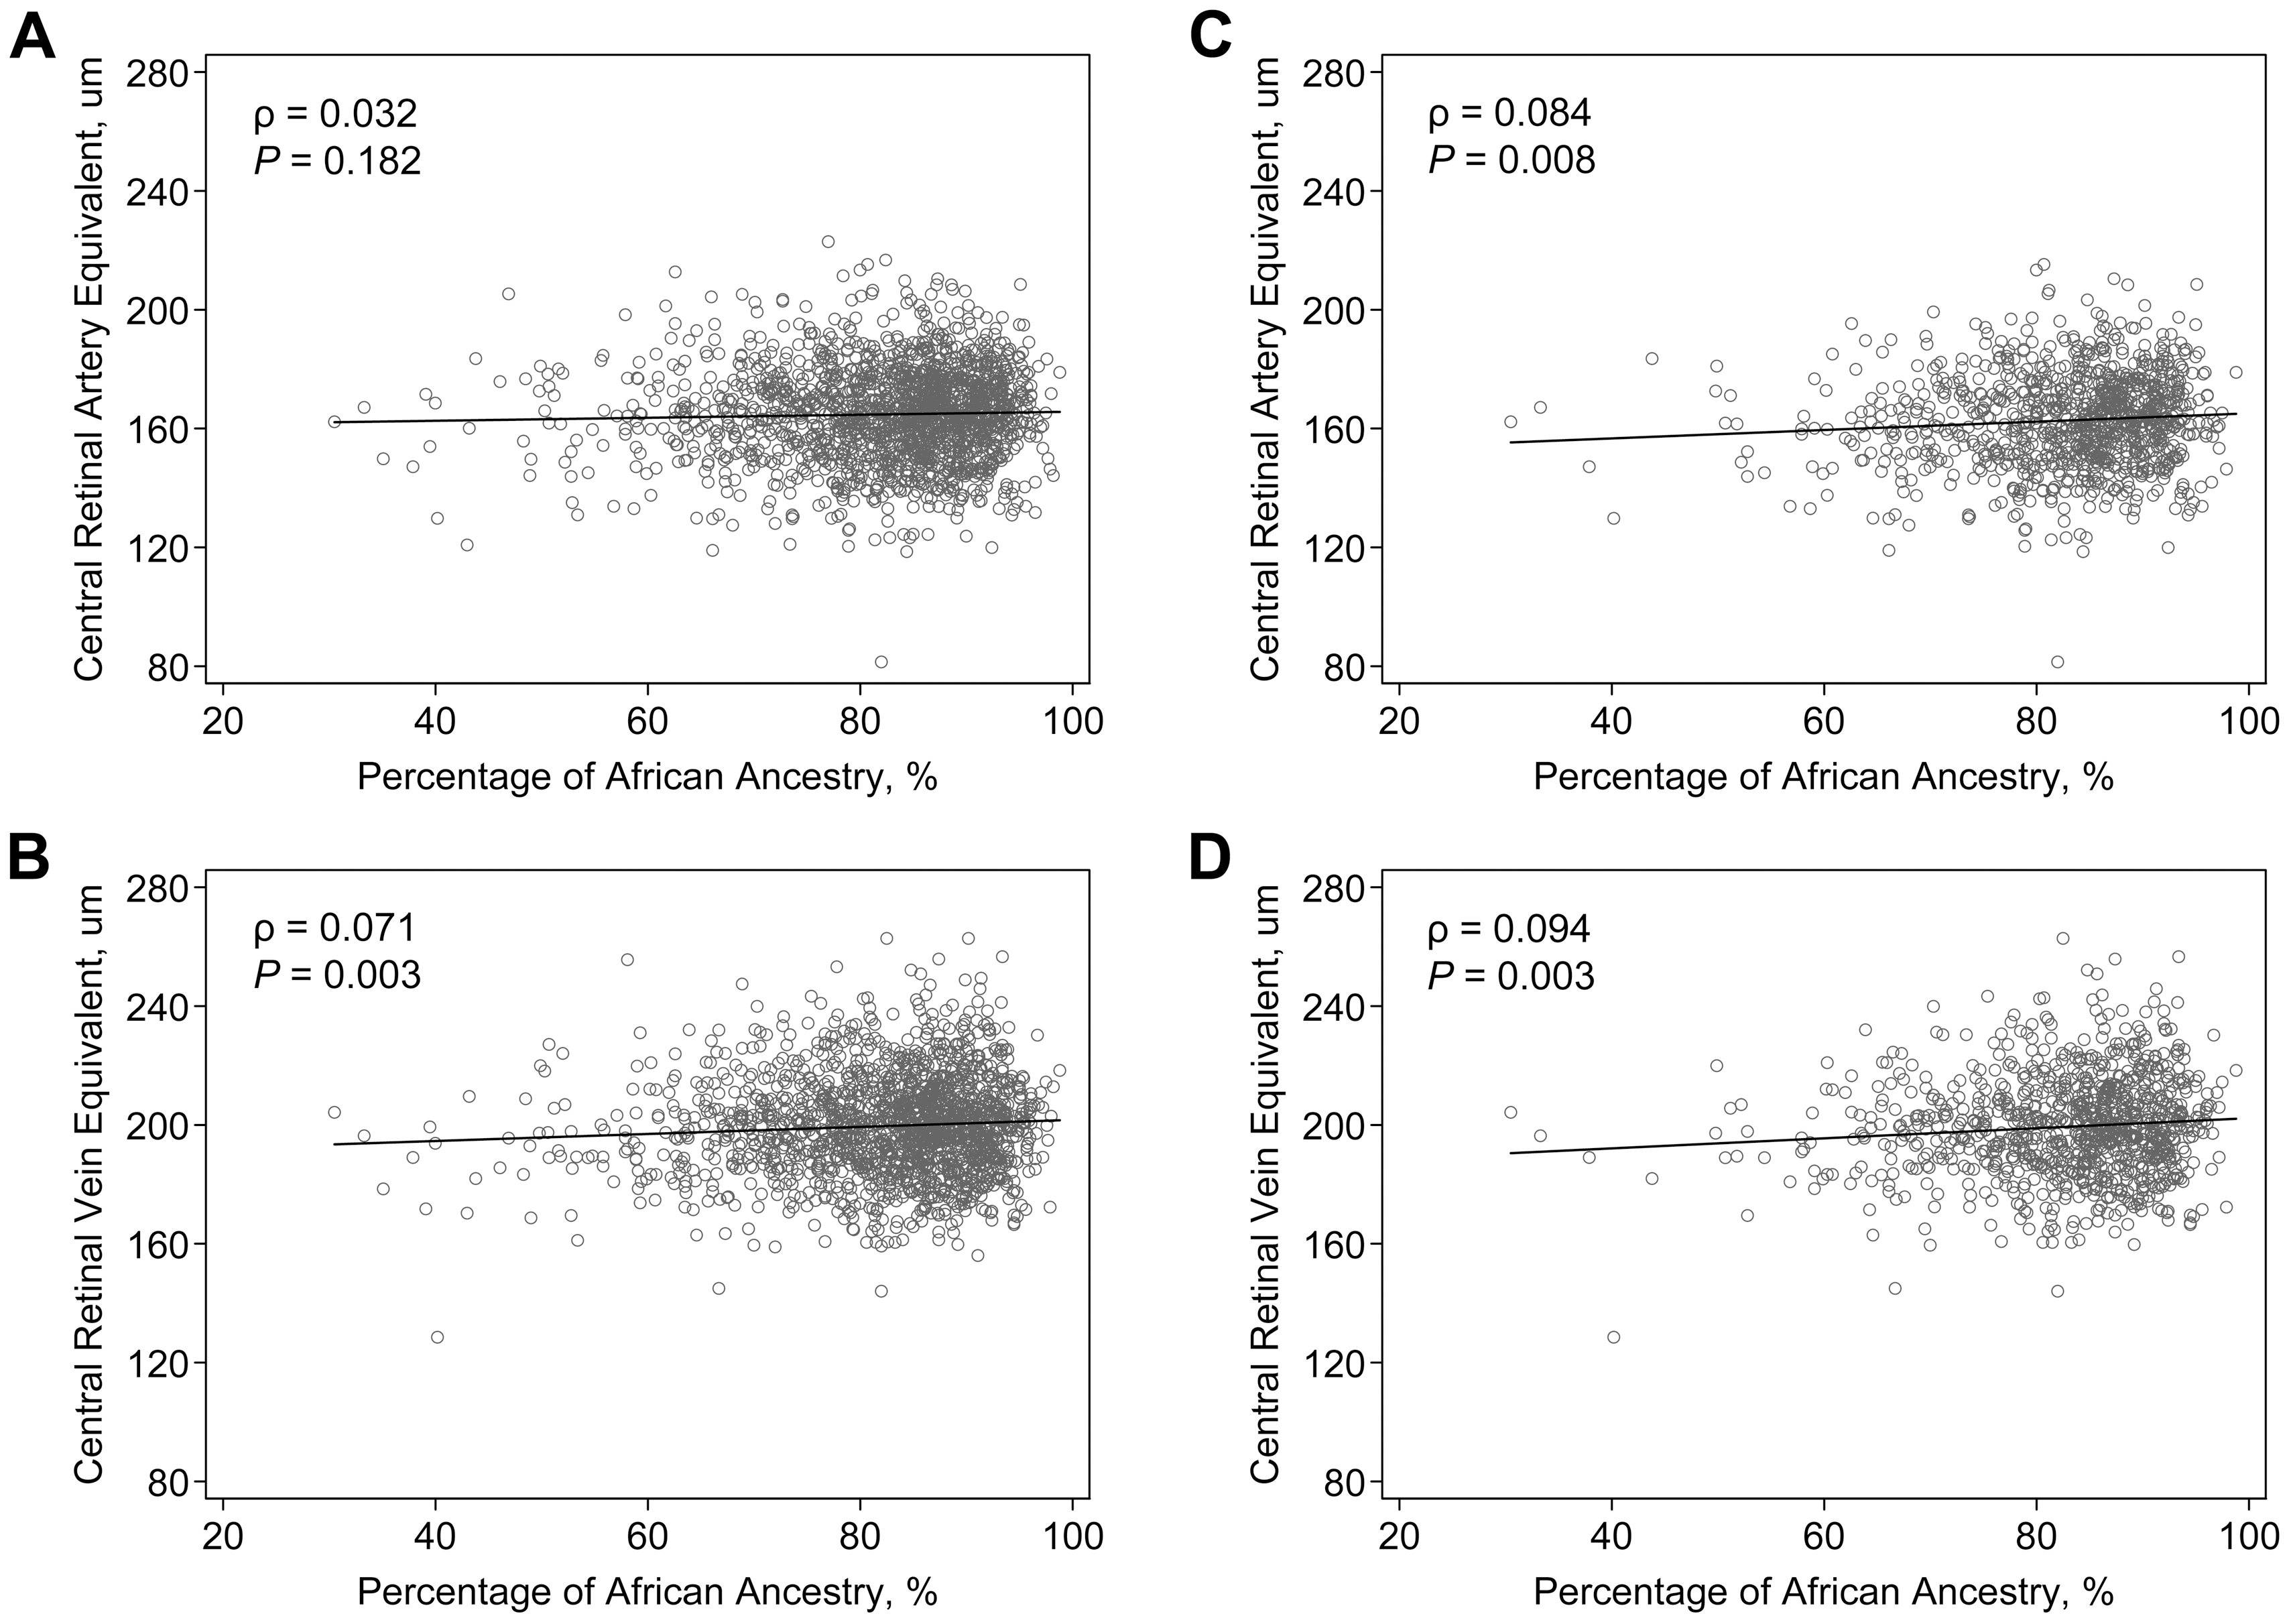 Correlation of retinal vascular calibers and the estimated percentage of African ancestry in the ARIC African Americans.